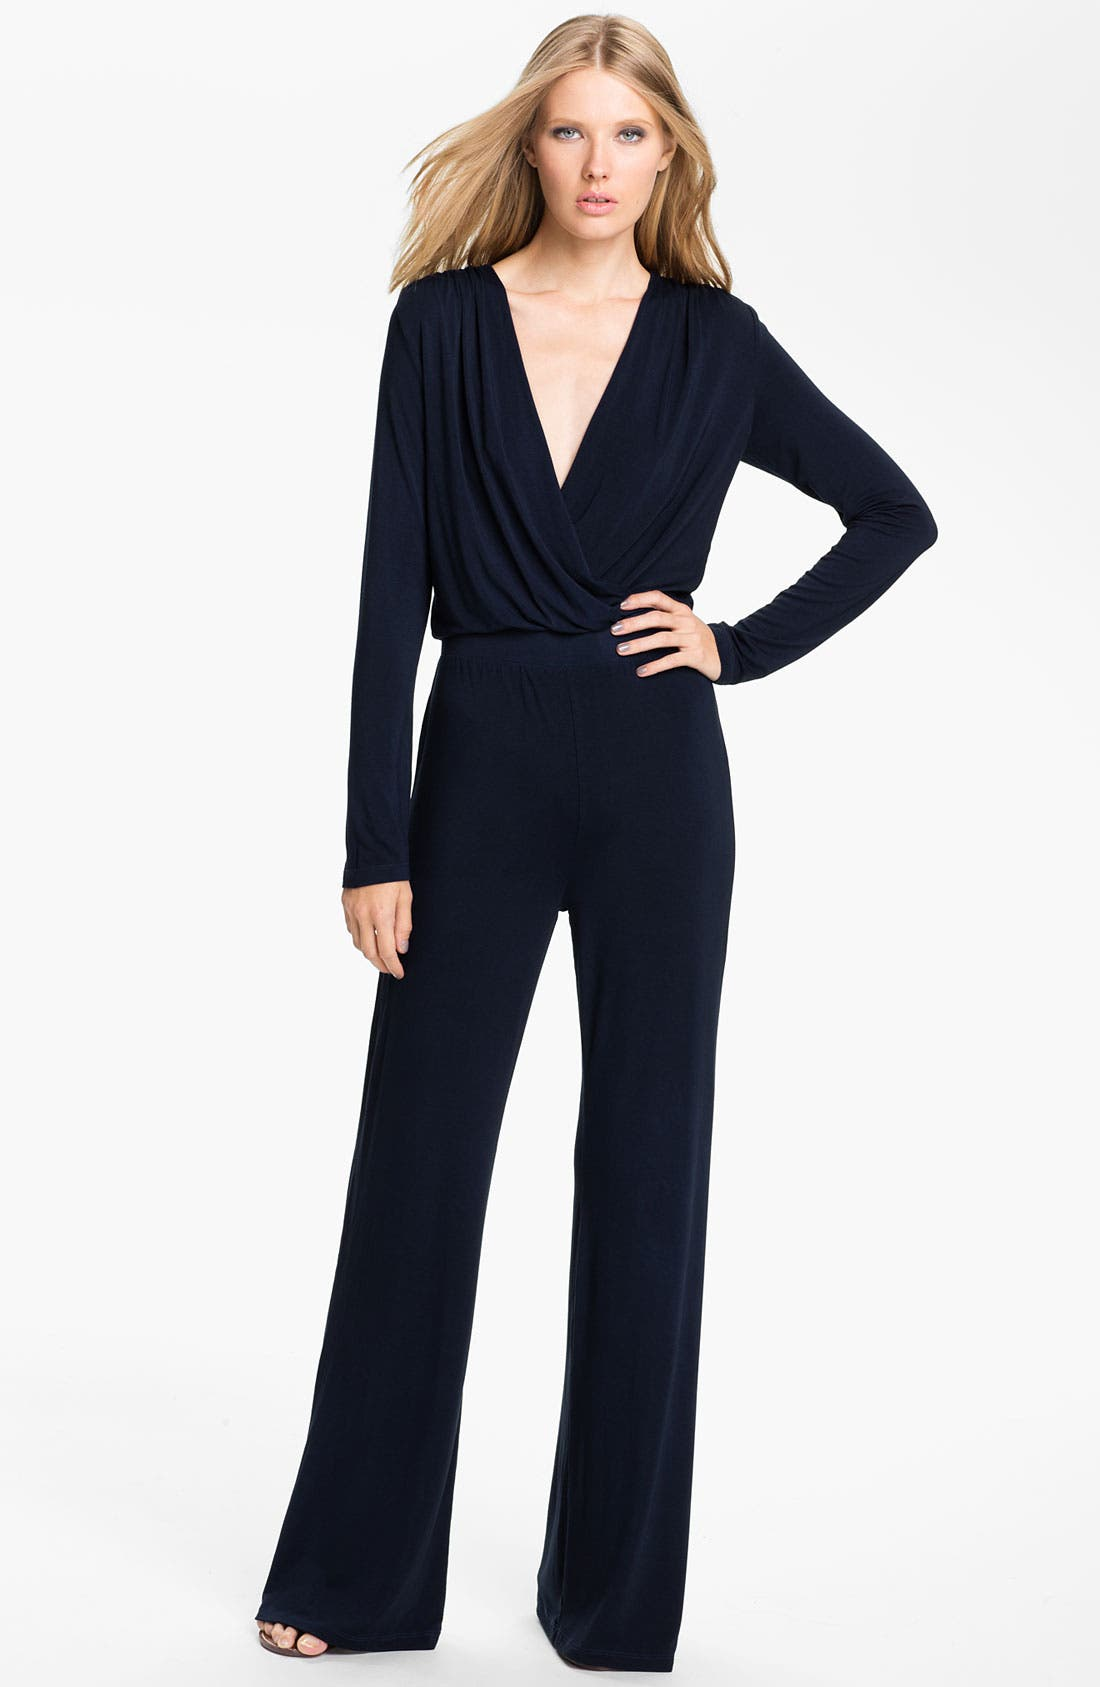 Alternate Image 1 Selected - Young, Fabulous & Broke 'Howell' Jumpsuit